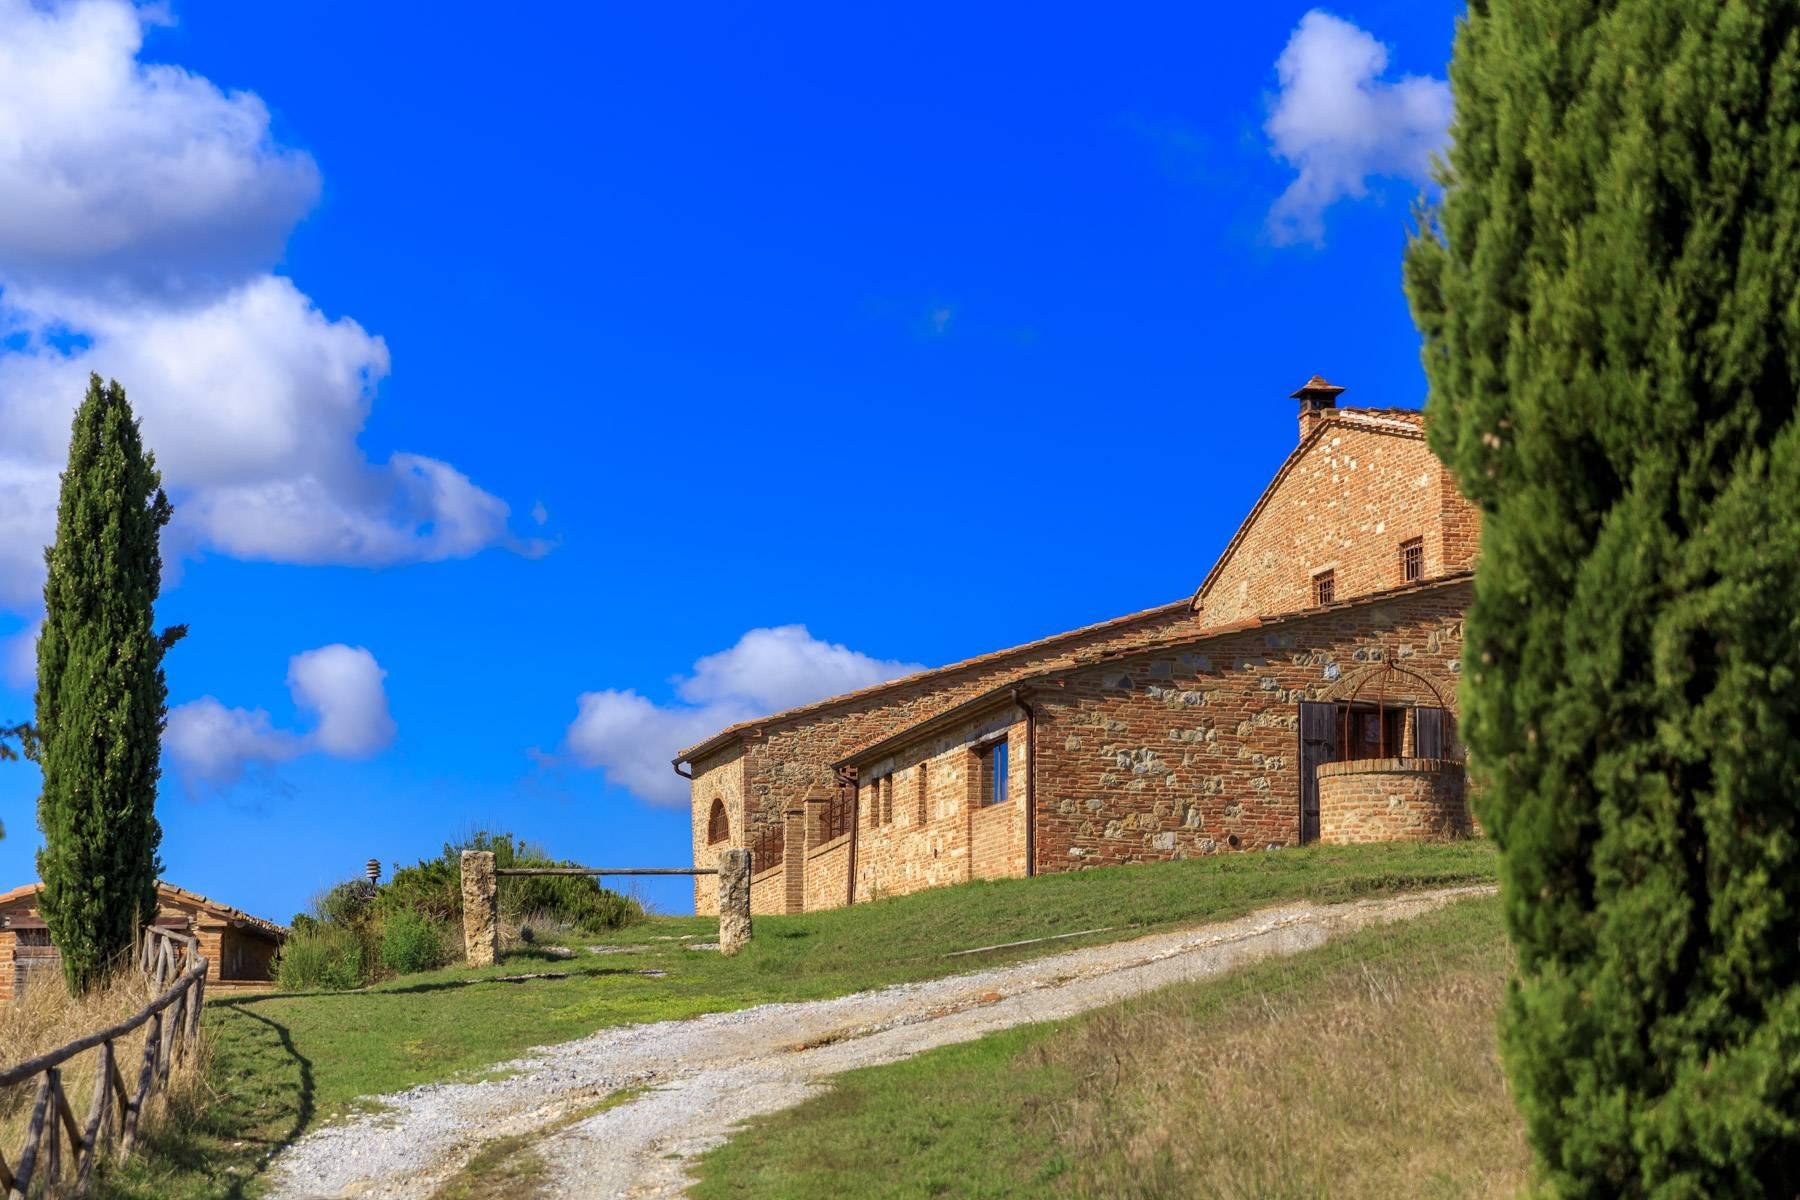 Wonderful tuscan countryhouse on the hills around Siena - 23